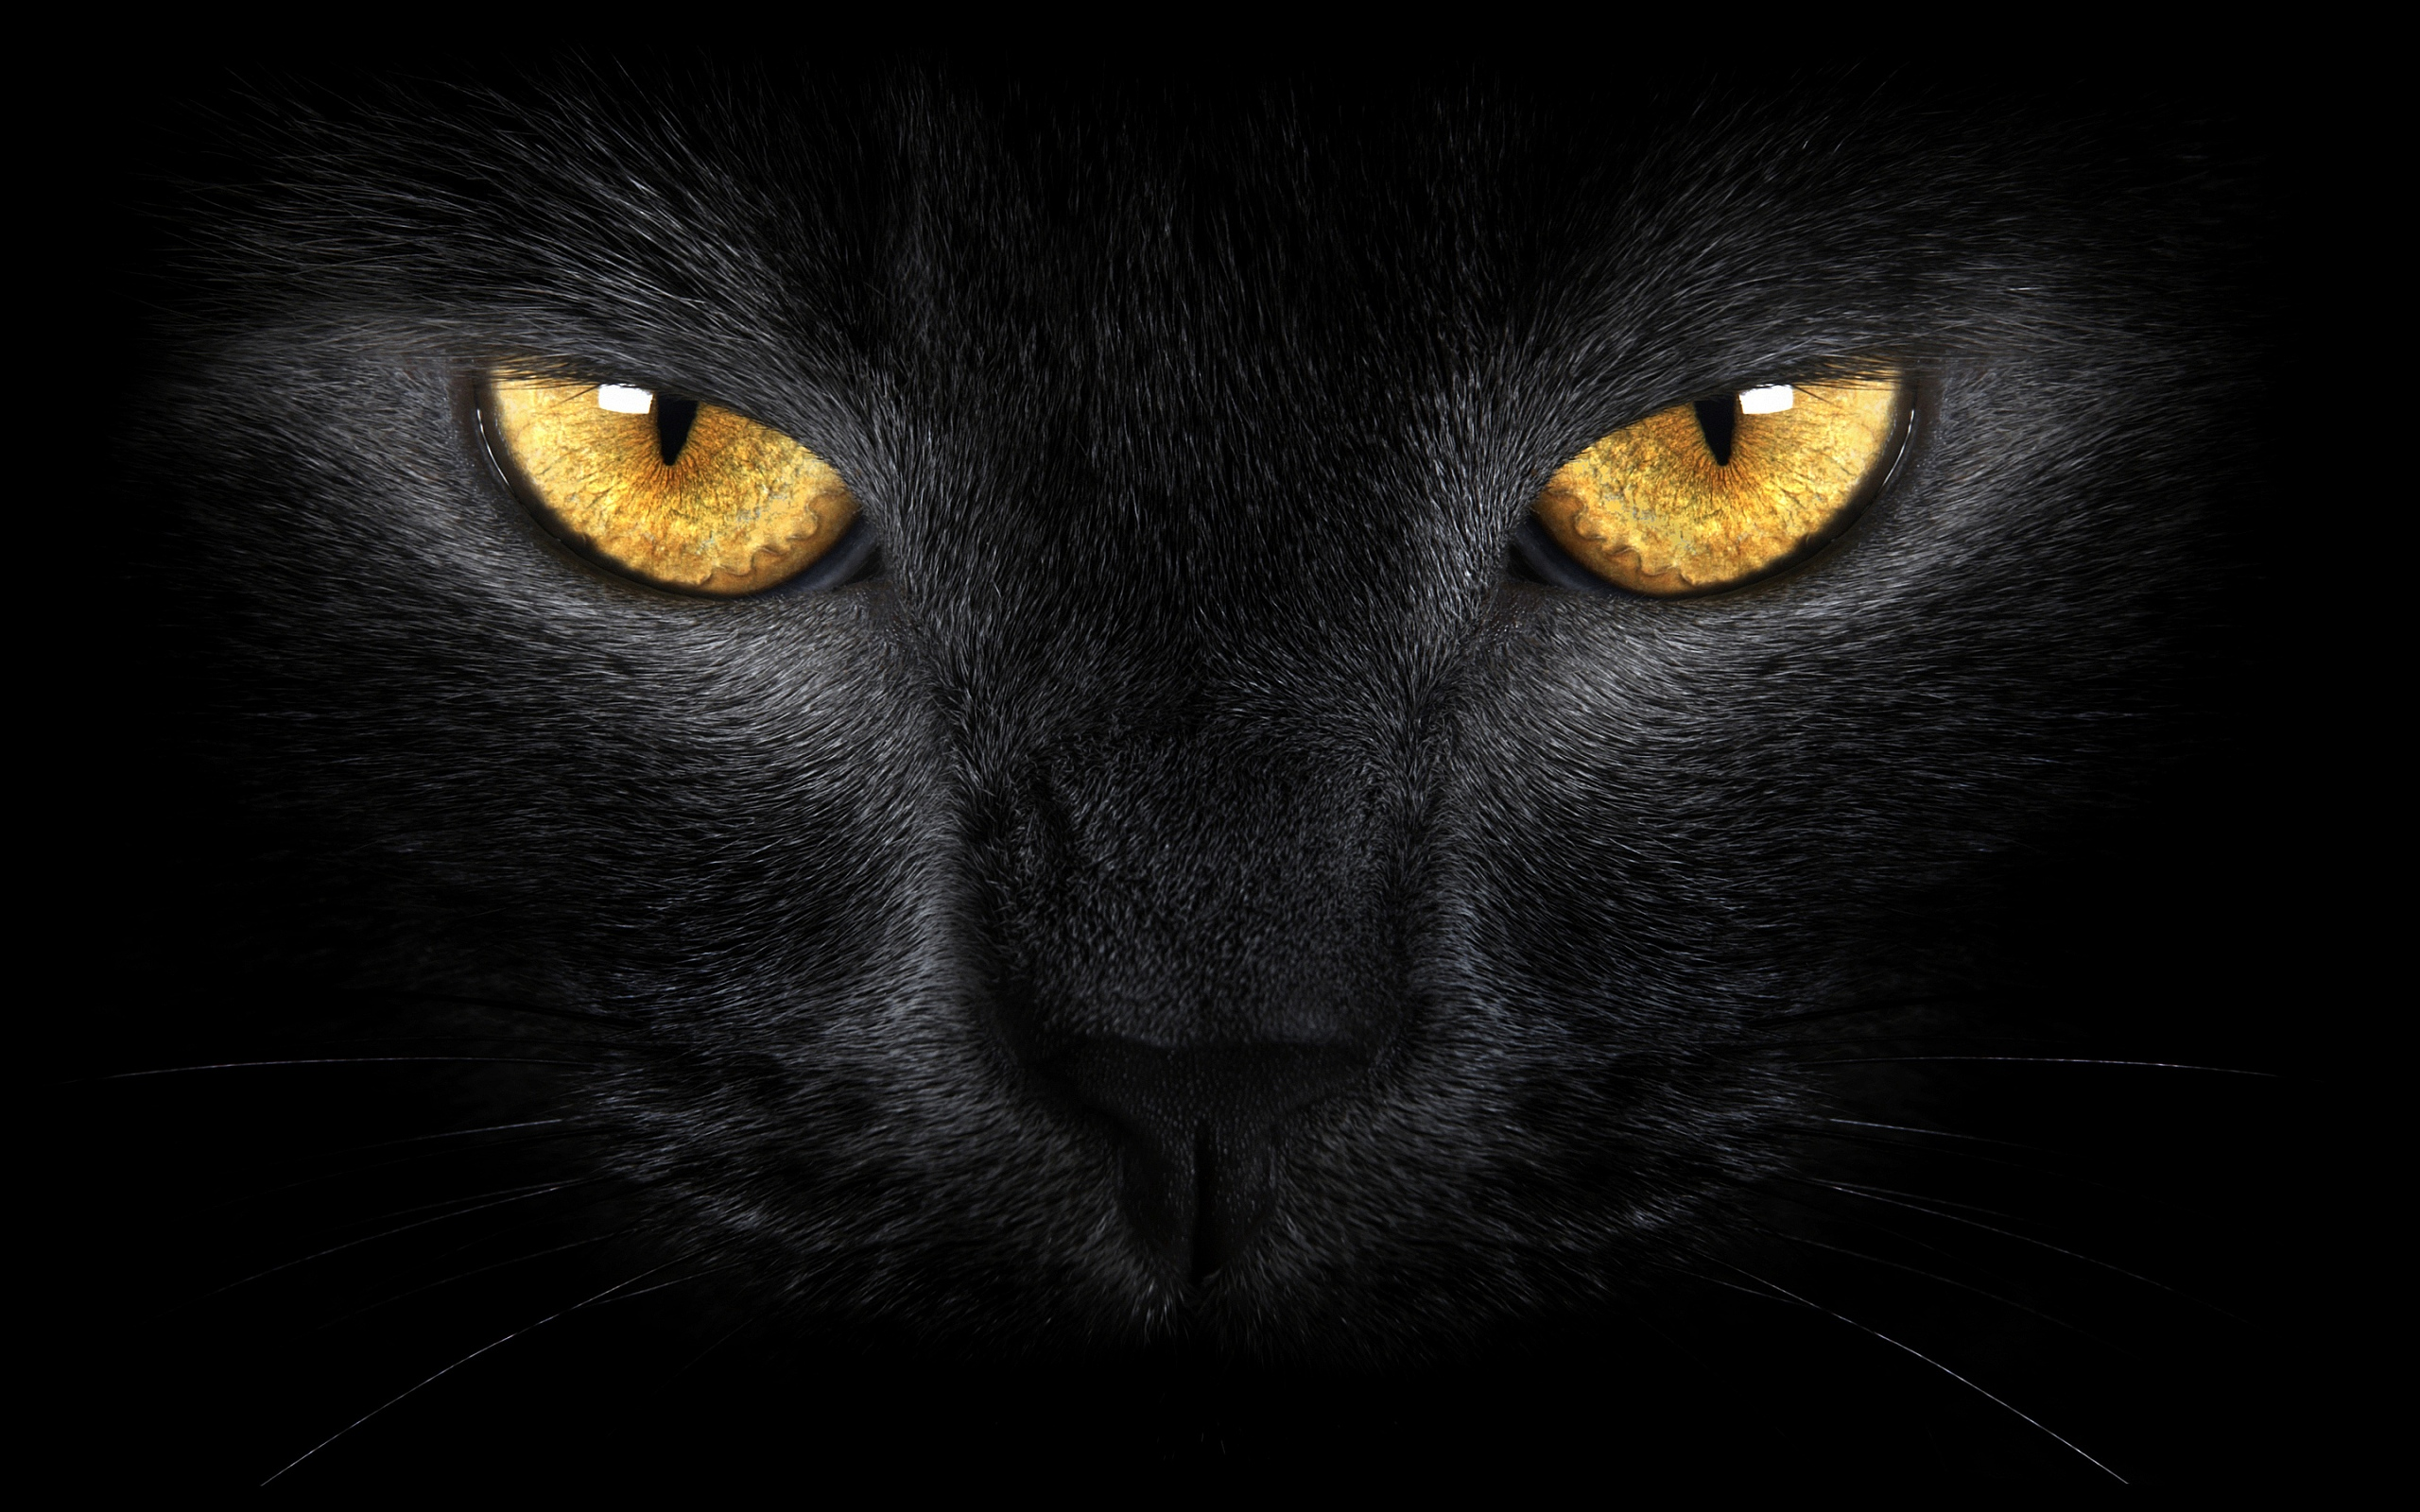 Black Cat Eyes Wallpaper: Cat Eyes Wallpaper